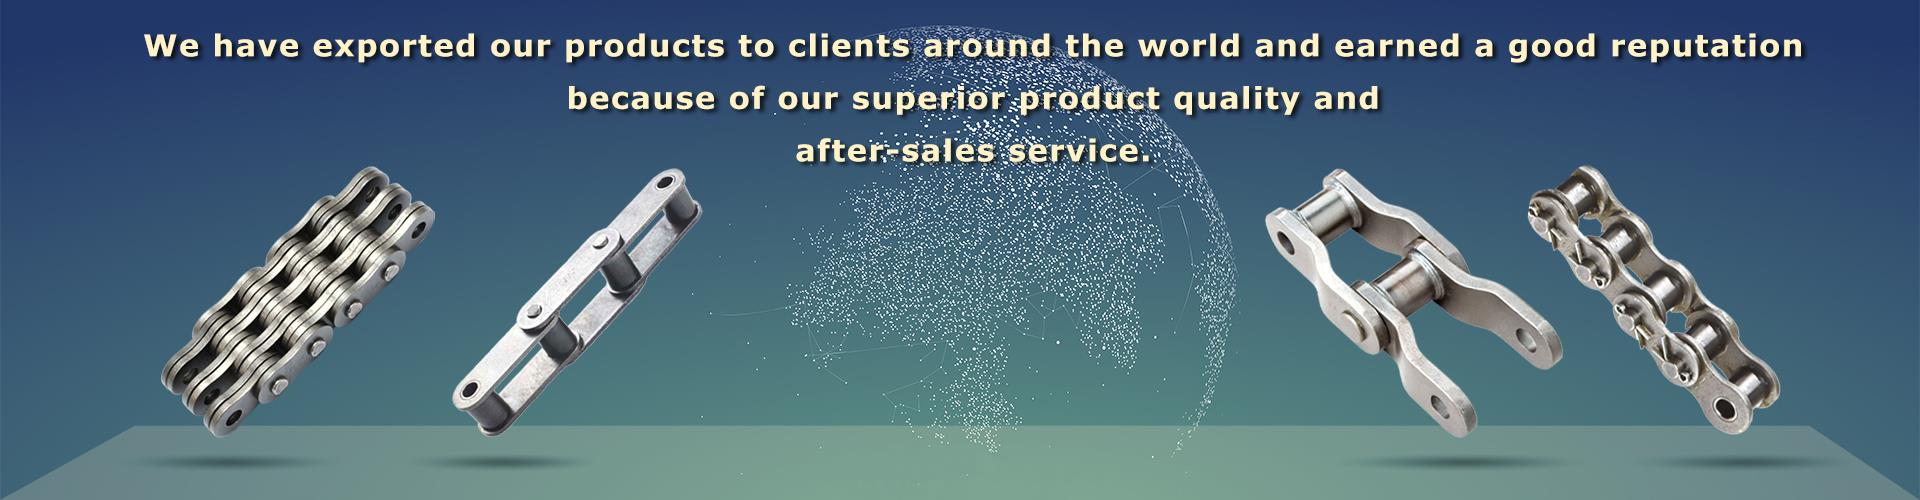 Machine  made in China - replacement parts -  in Nagpur India  Parts Differential Customize Transmission Gear with ce certificate top quality low price